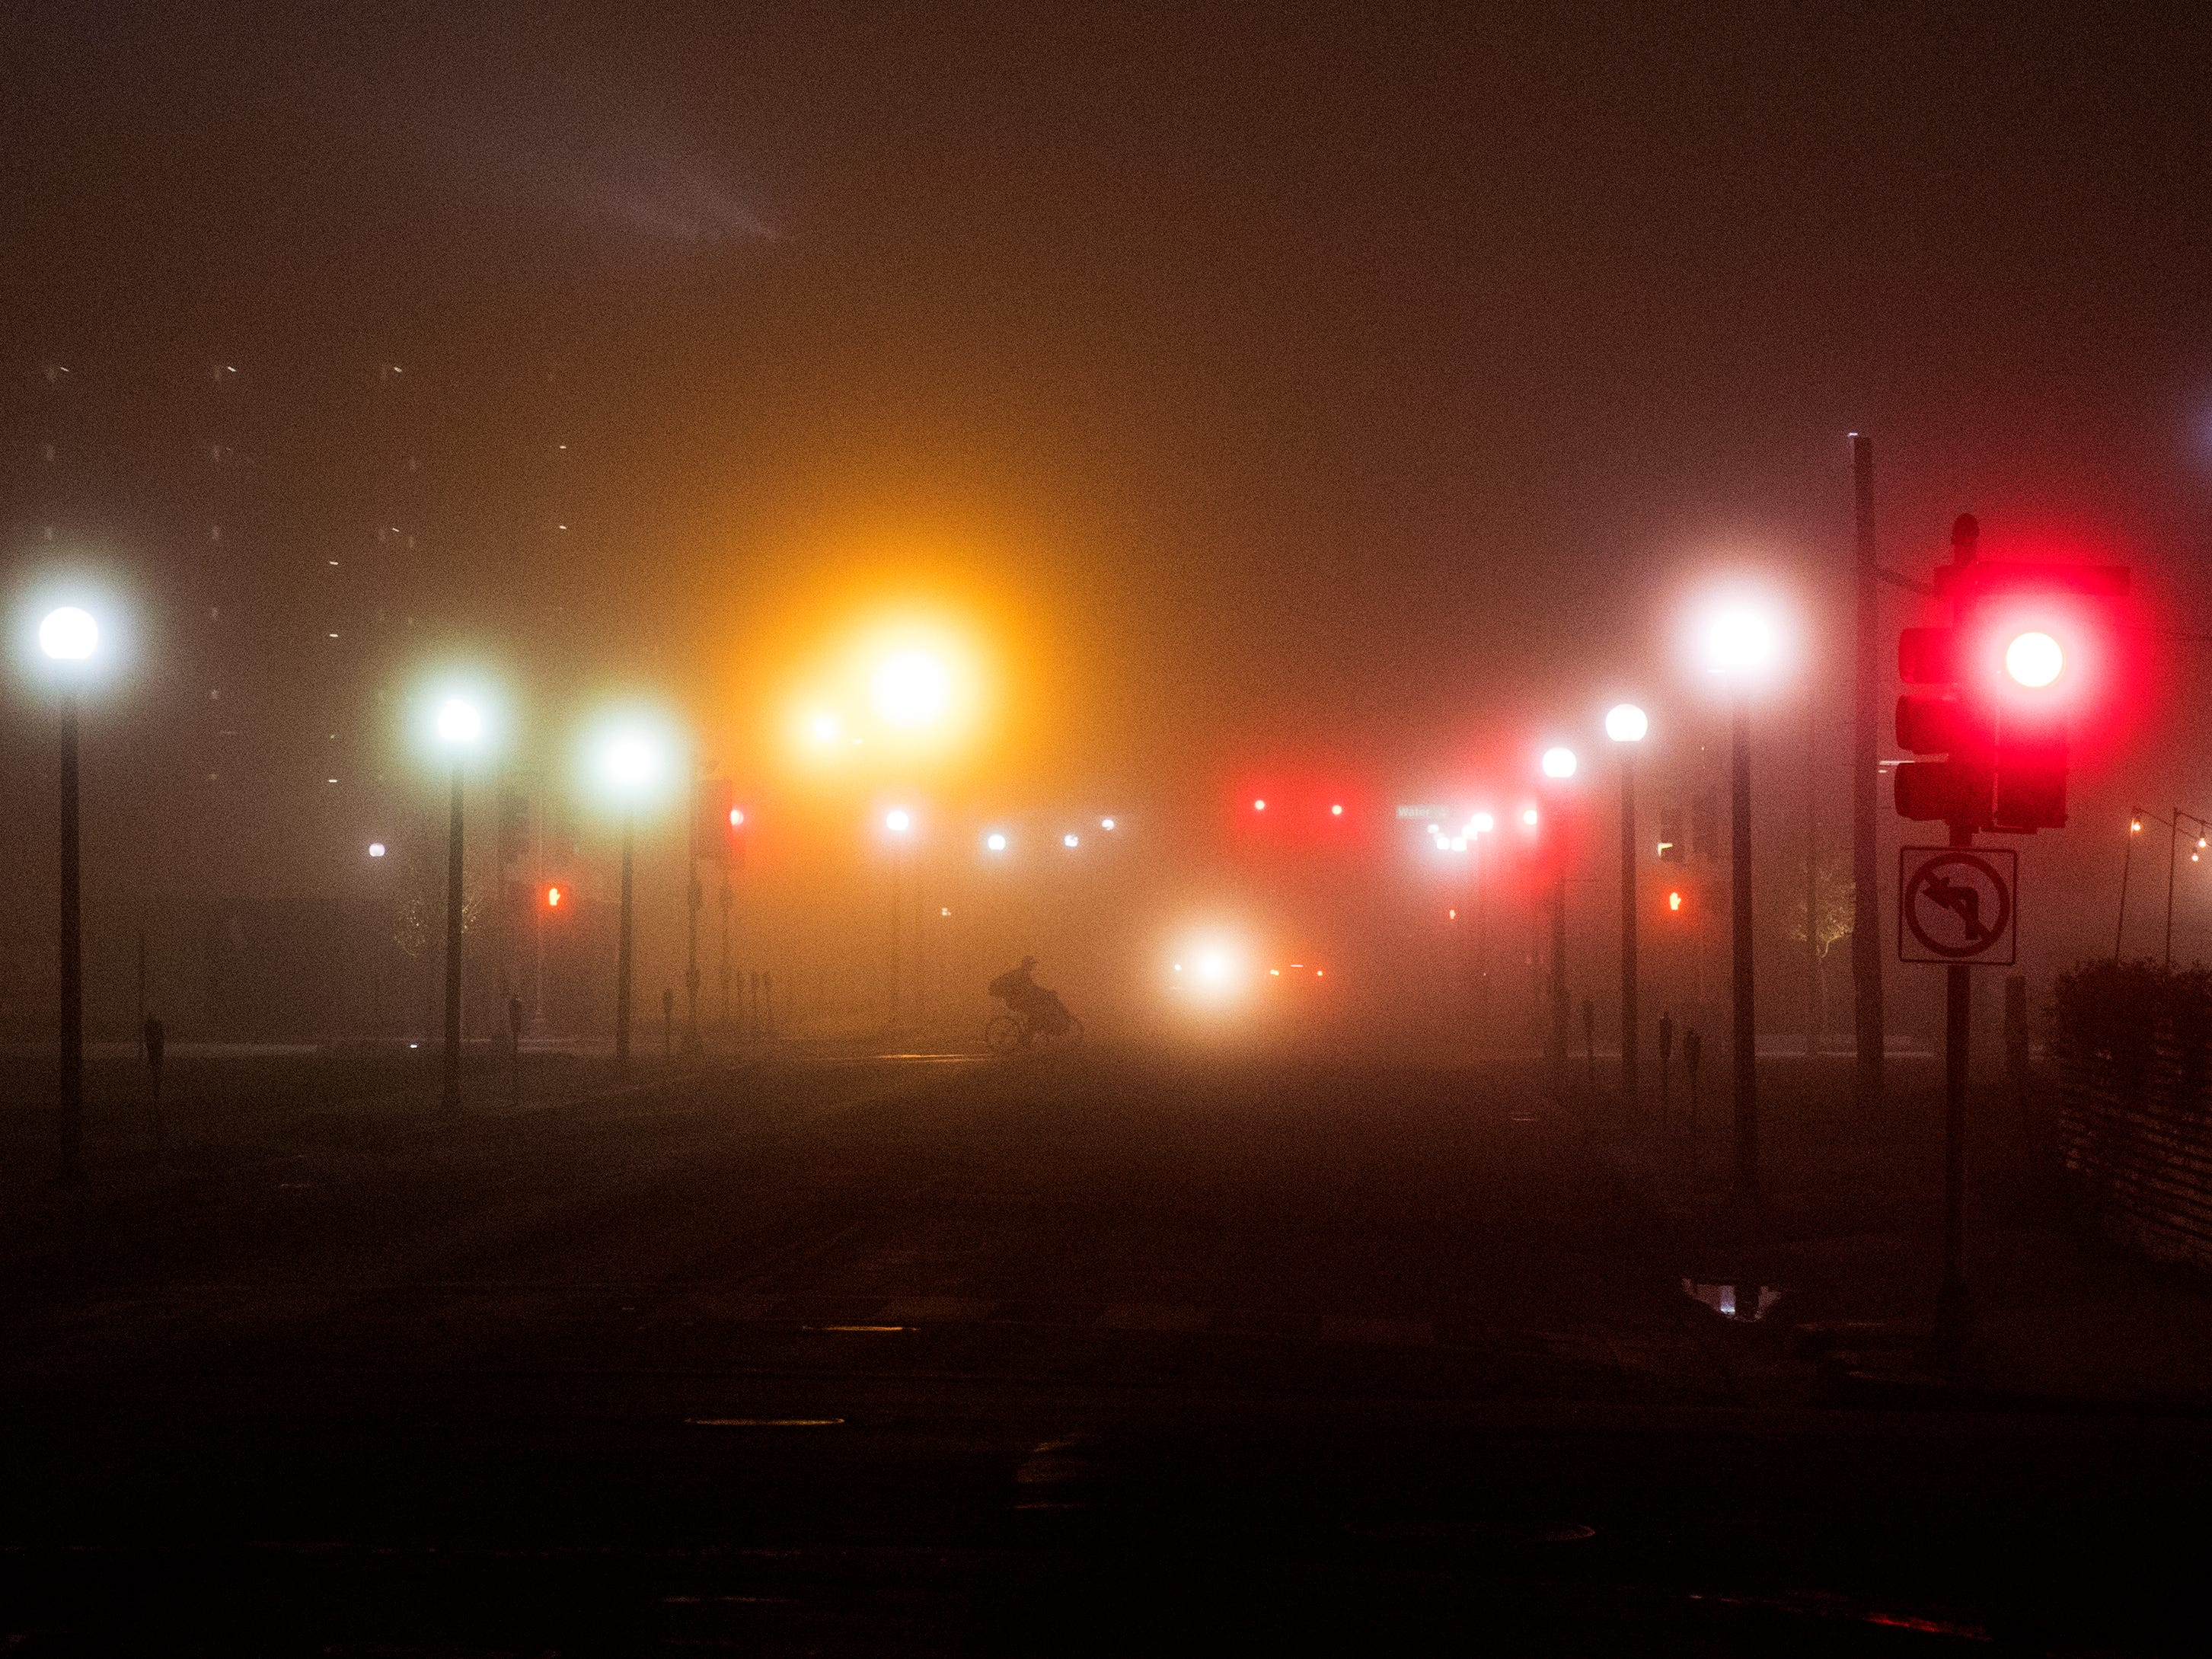 Downtown Corpus Christi was shrouded in fog on Monday, February 4, 2019.